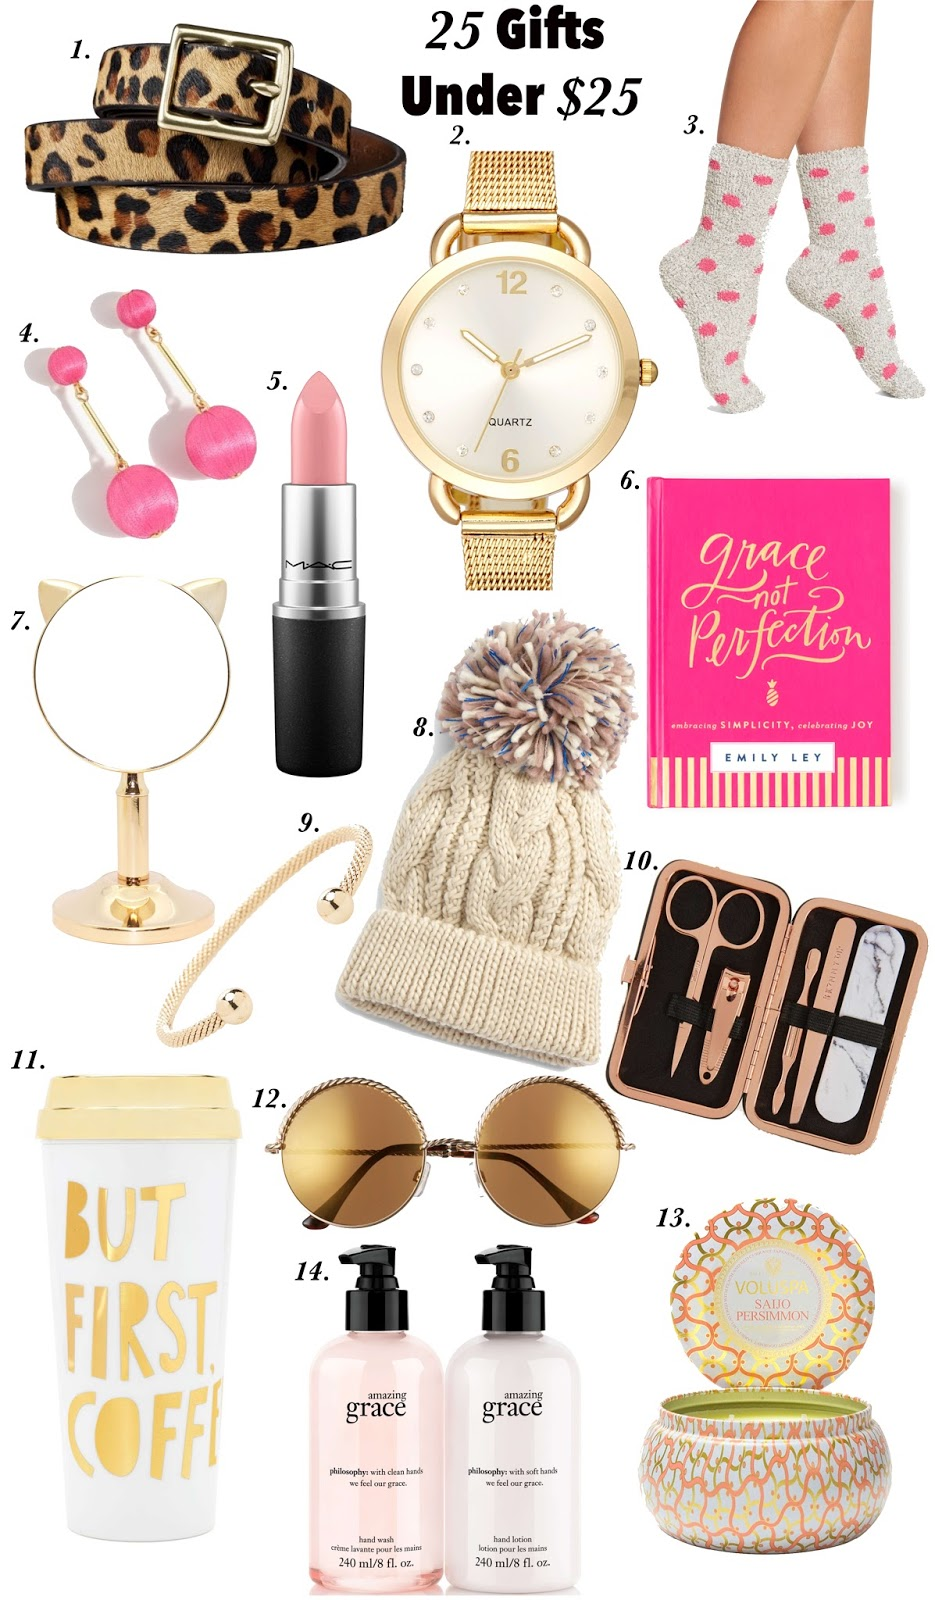 25 Gifts Under $25 - Something Delightful Blog